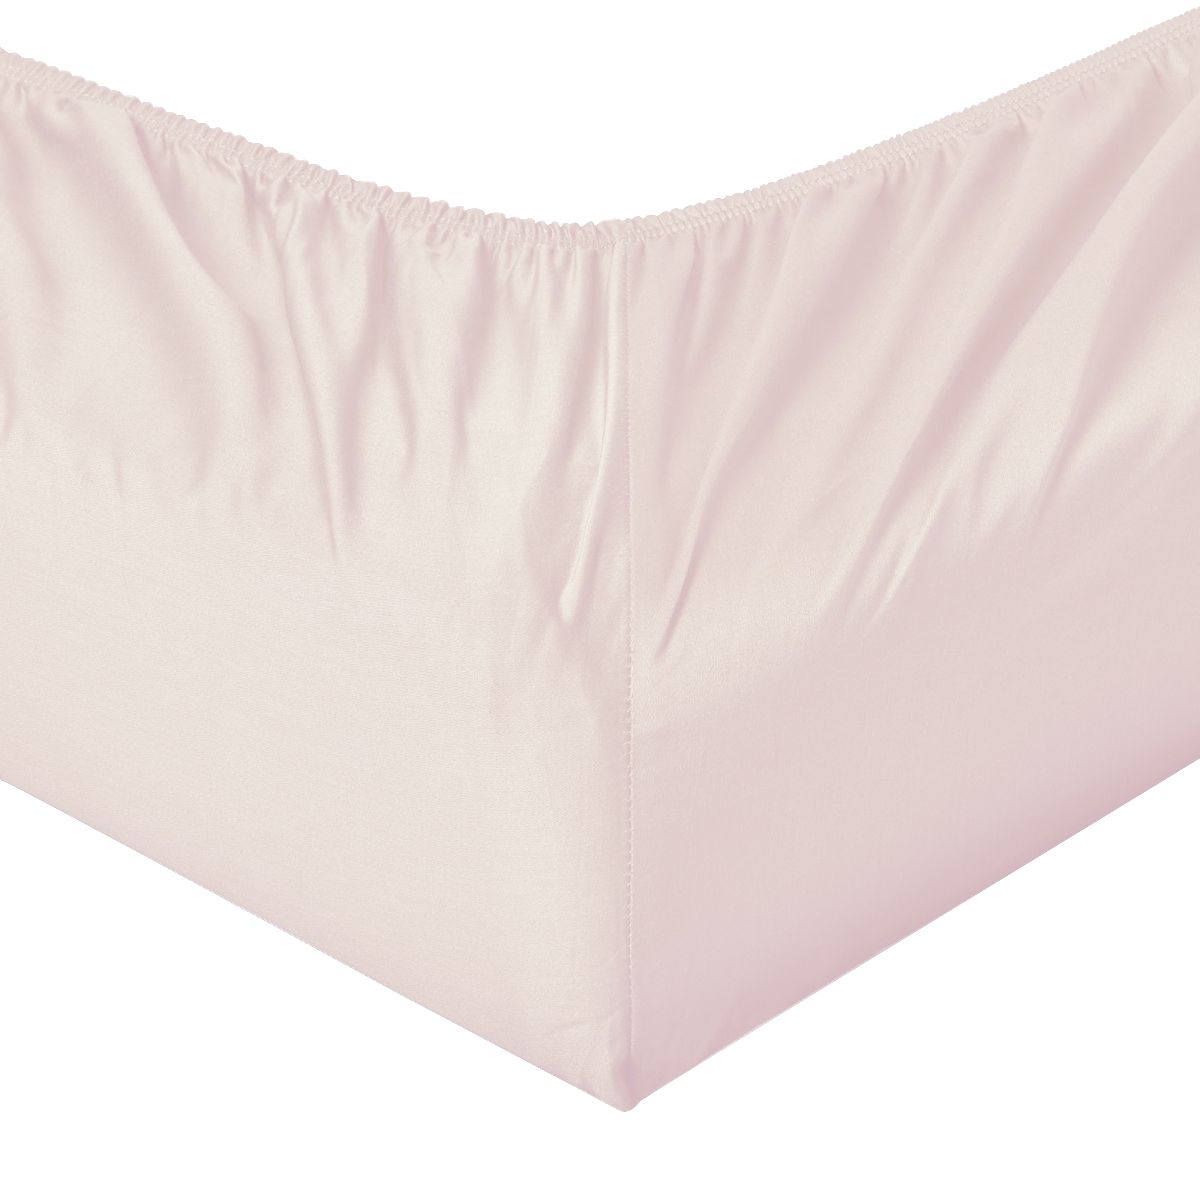 molton-fitted sheet